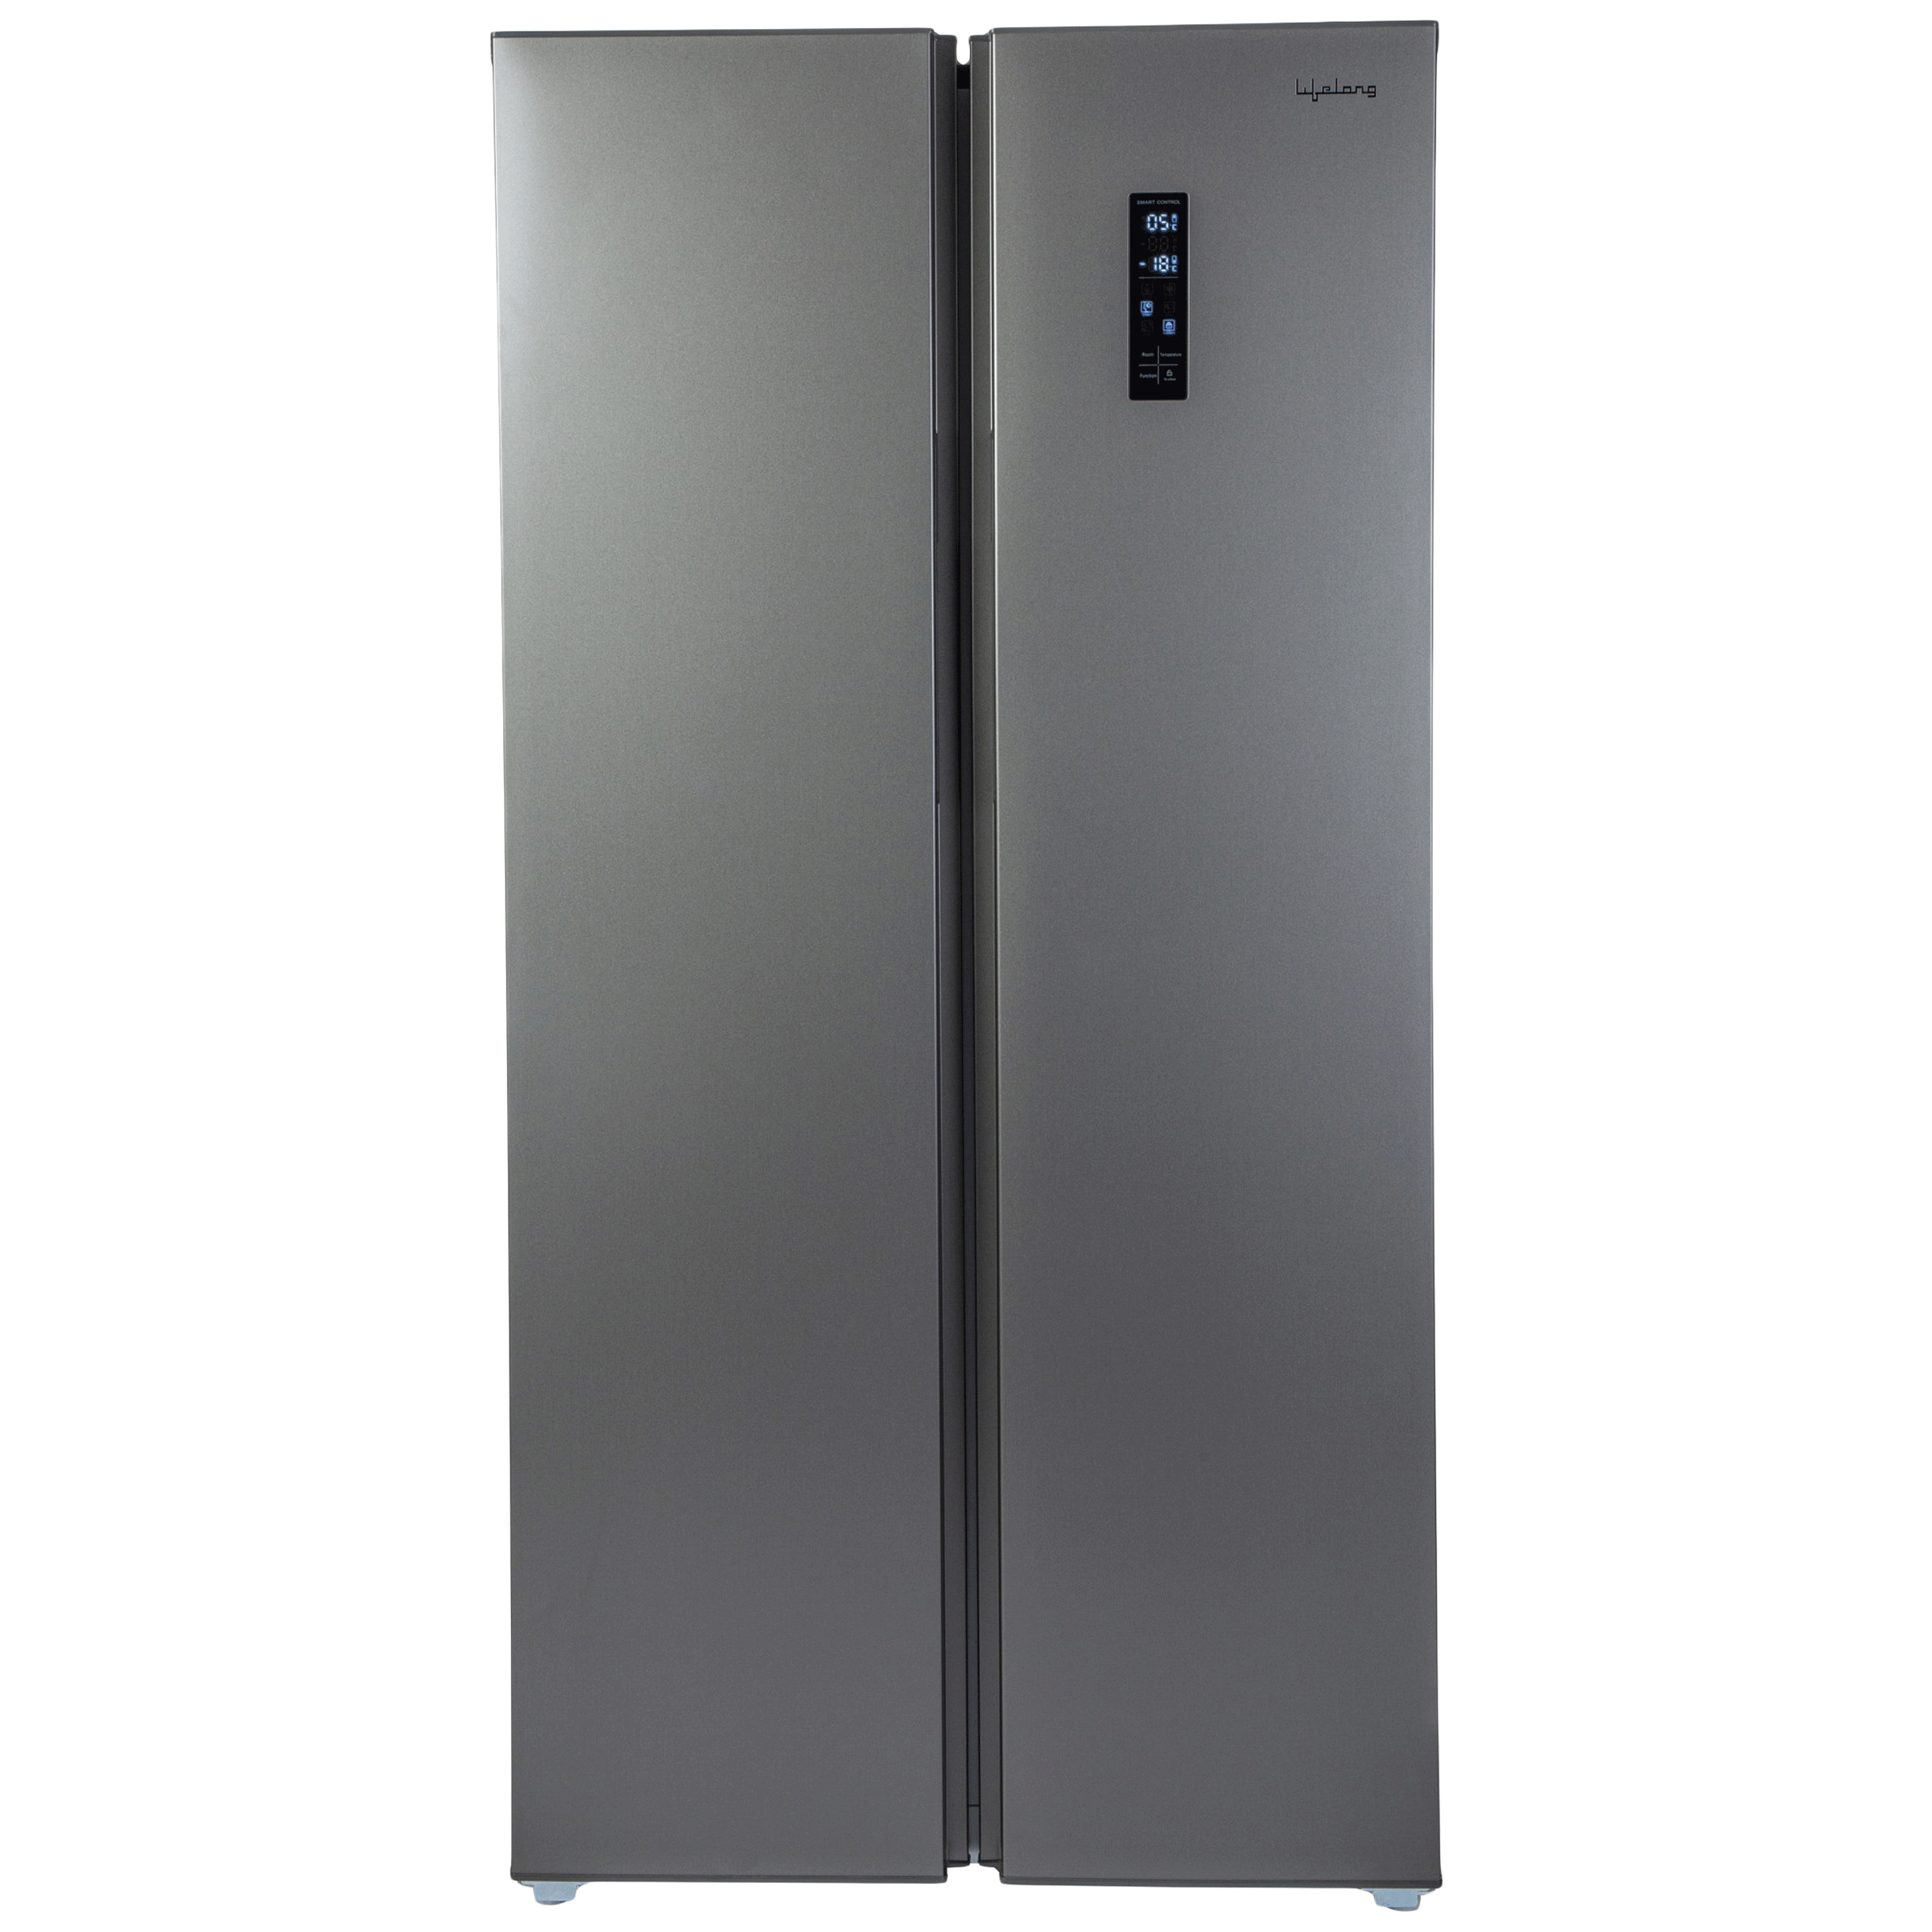 Lifelong 505 Litres Frost Free Inverter Side-by-Side Refrigerator (Quick Freeze, LLSBSR505, Silver)_1